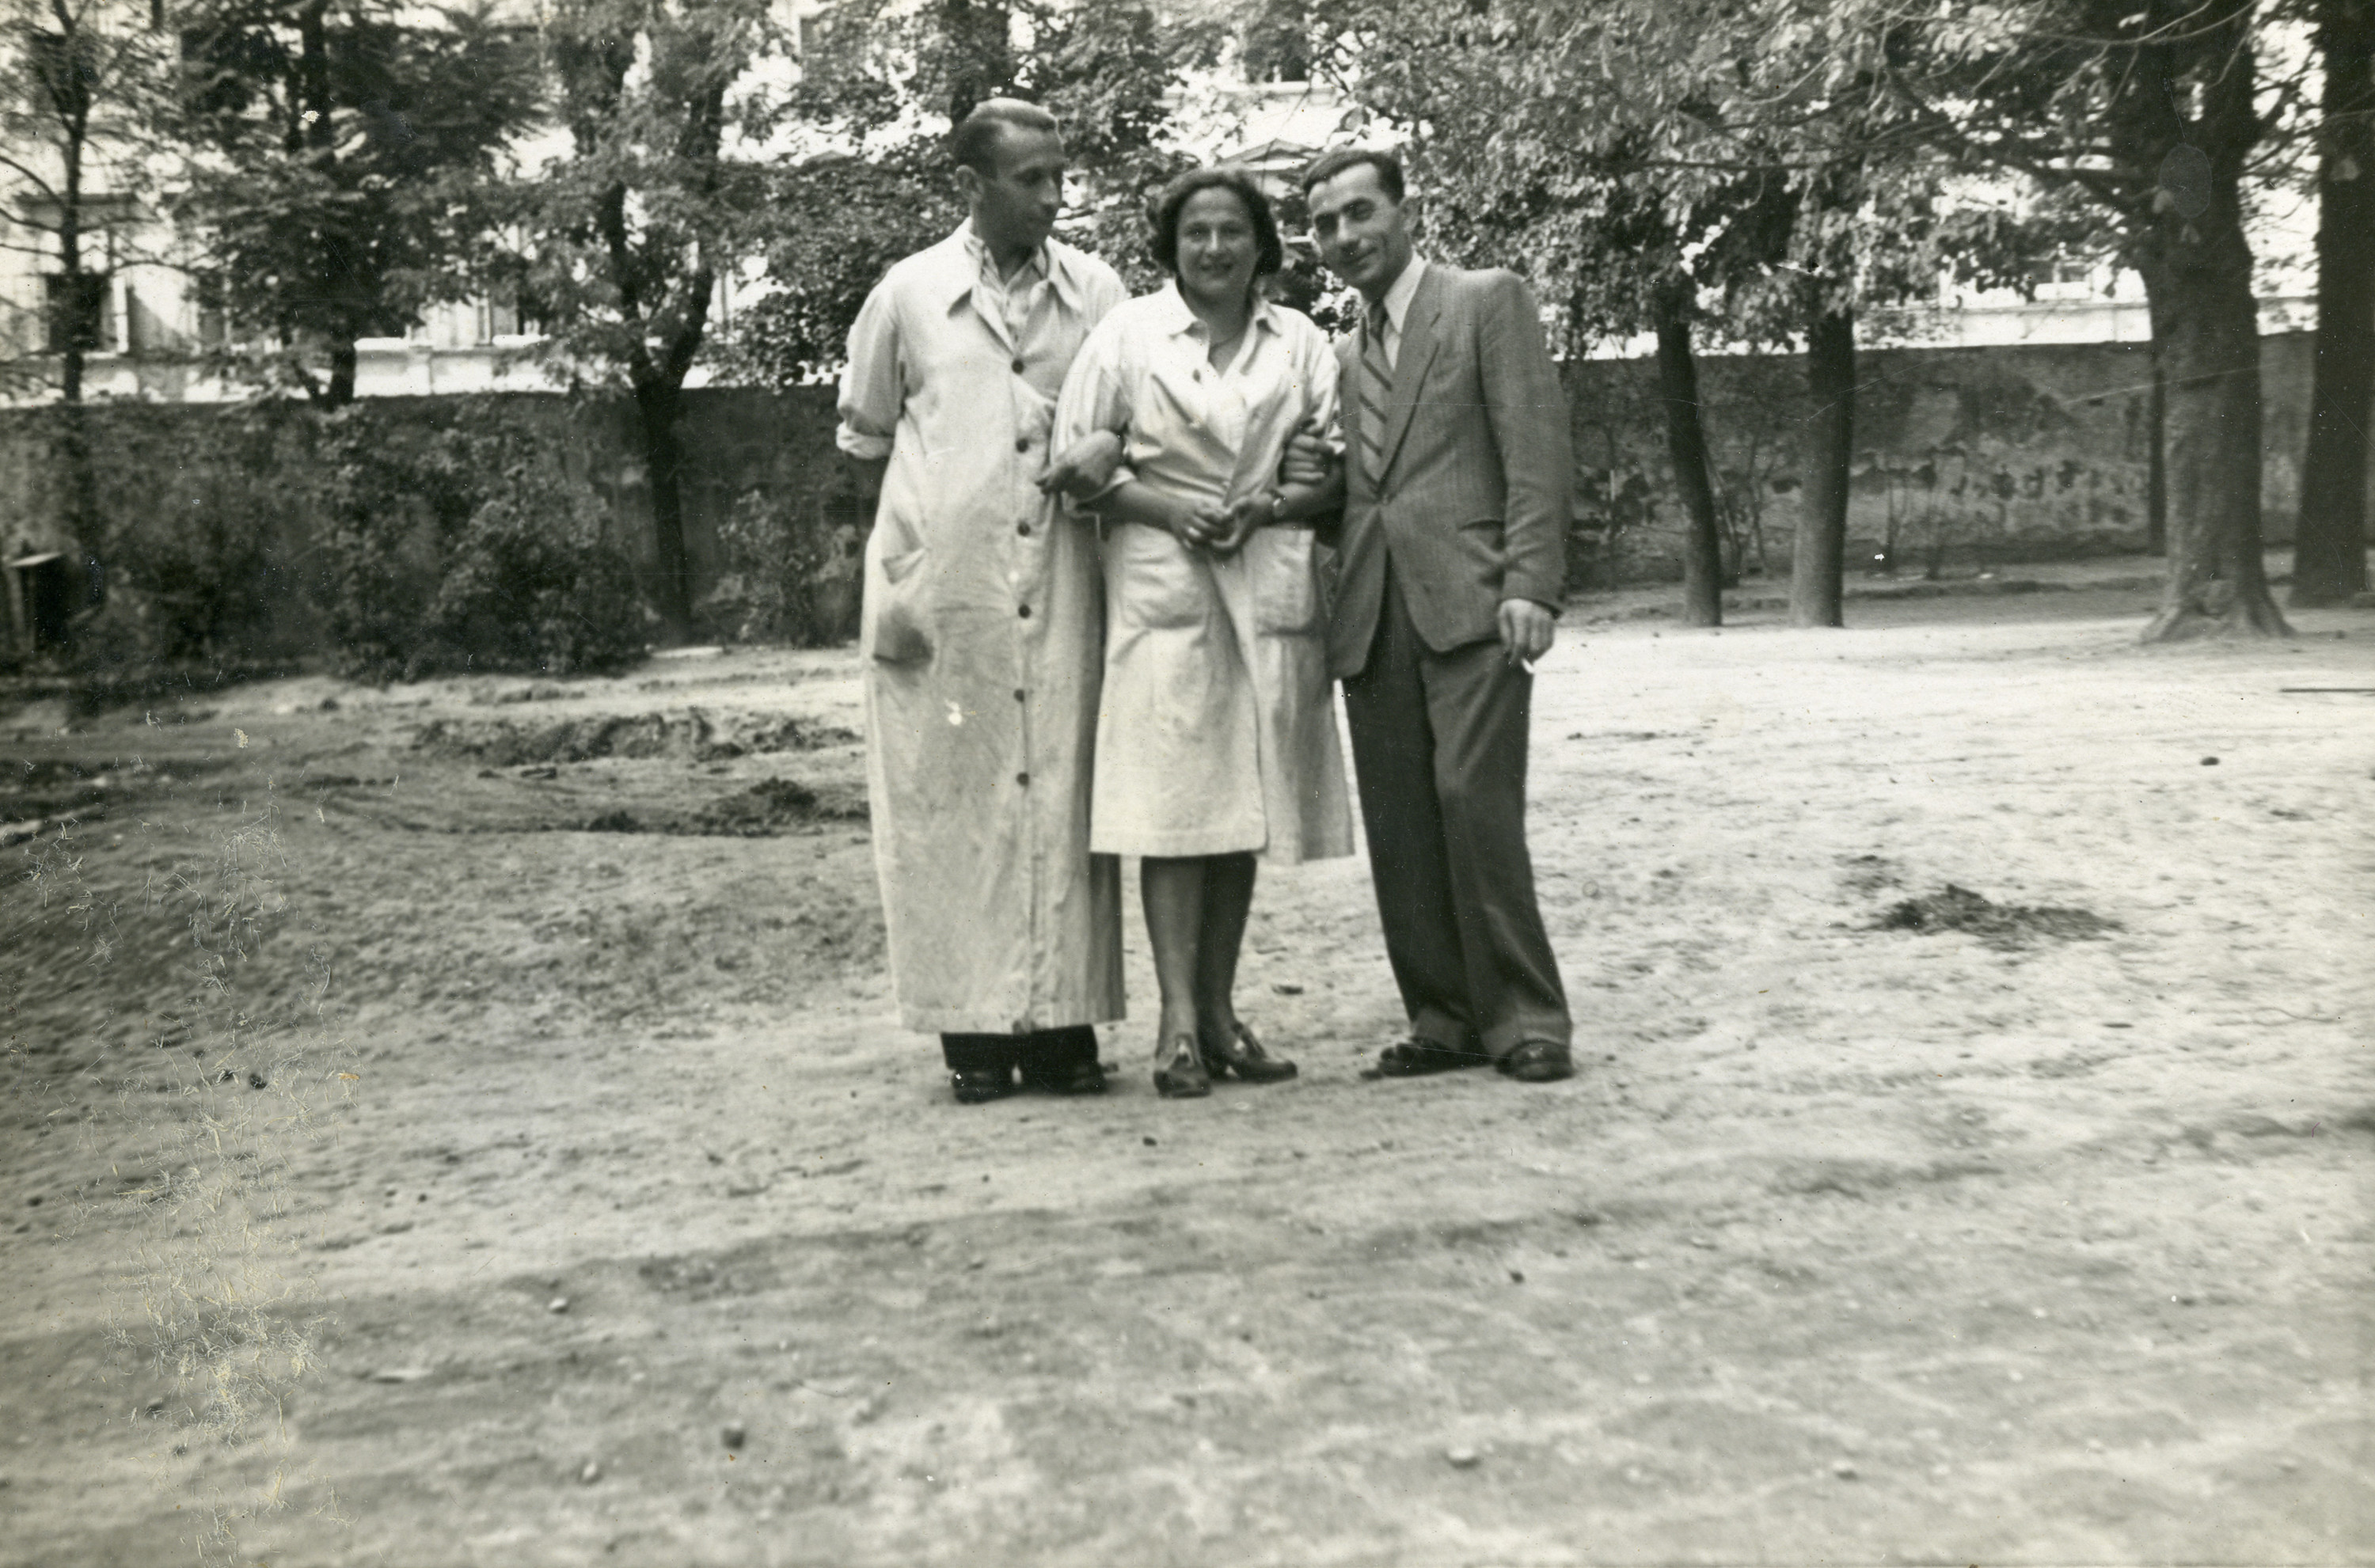 Dr. Georg Kollman (left) stands with a nurse and an UNRAA staff member, probably on the Rothschild hospital grounds.